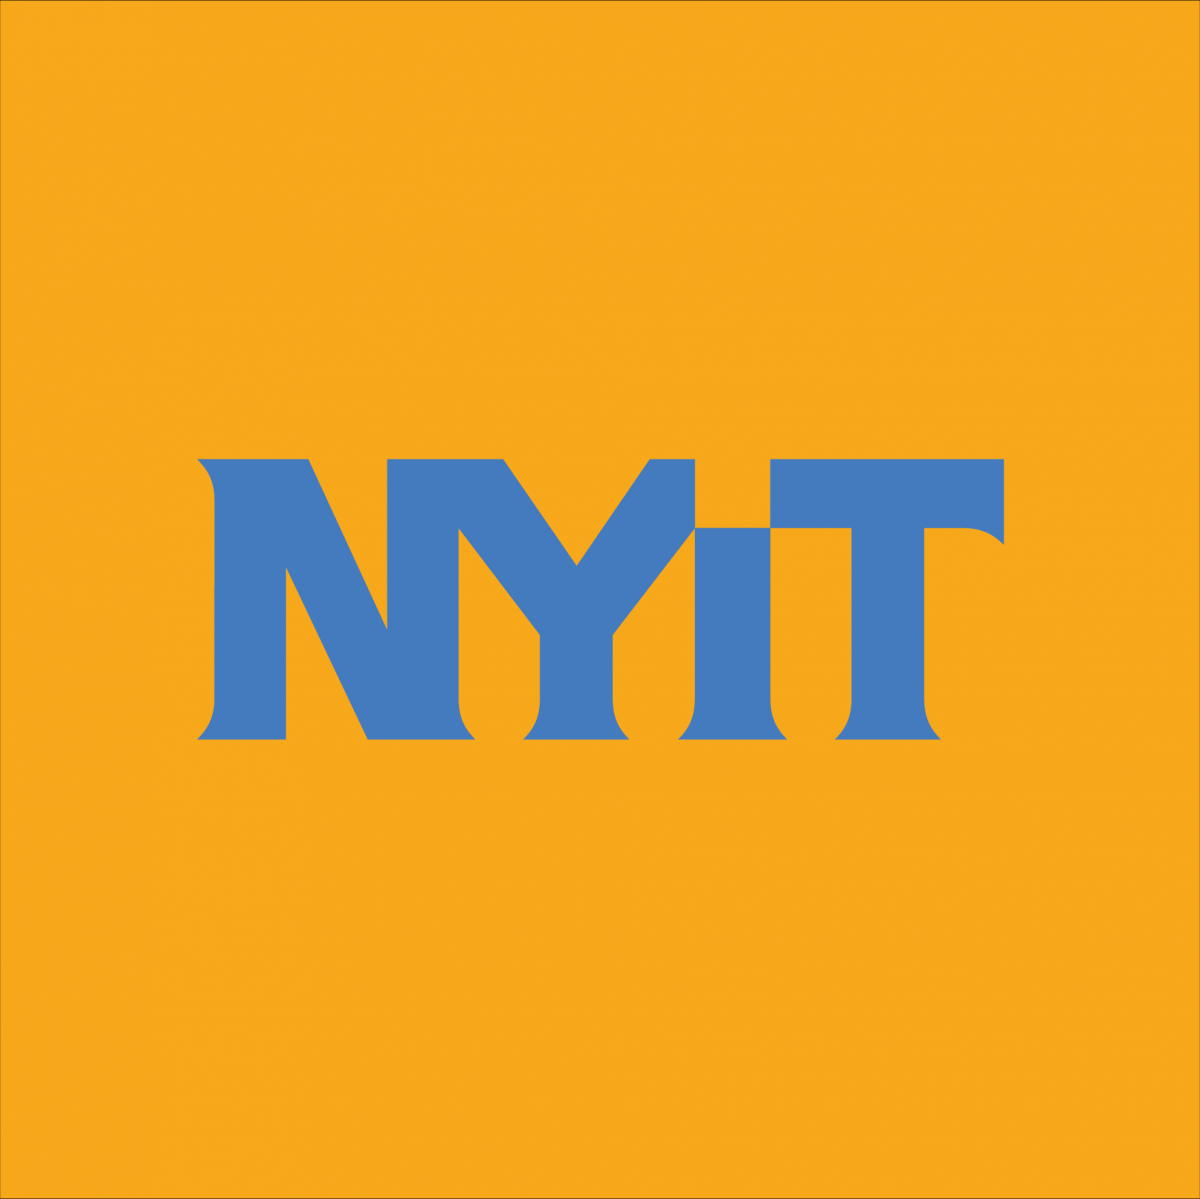 Proposed NYIT College of Osteopathic Medicine at Arkansas